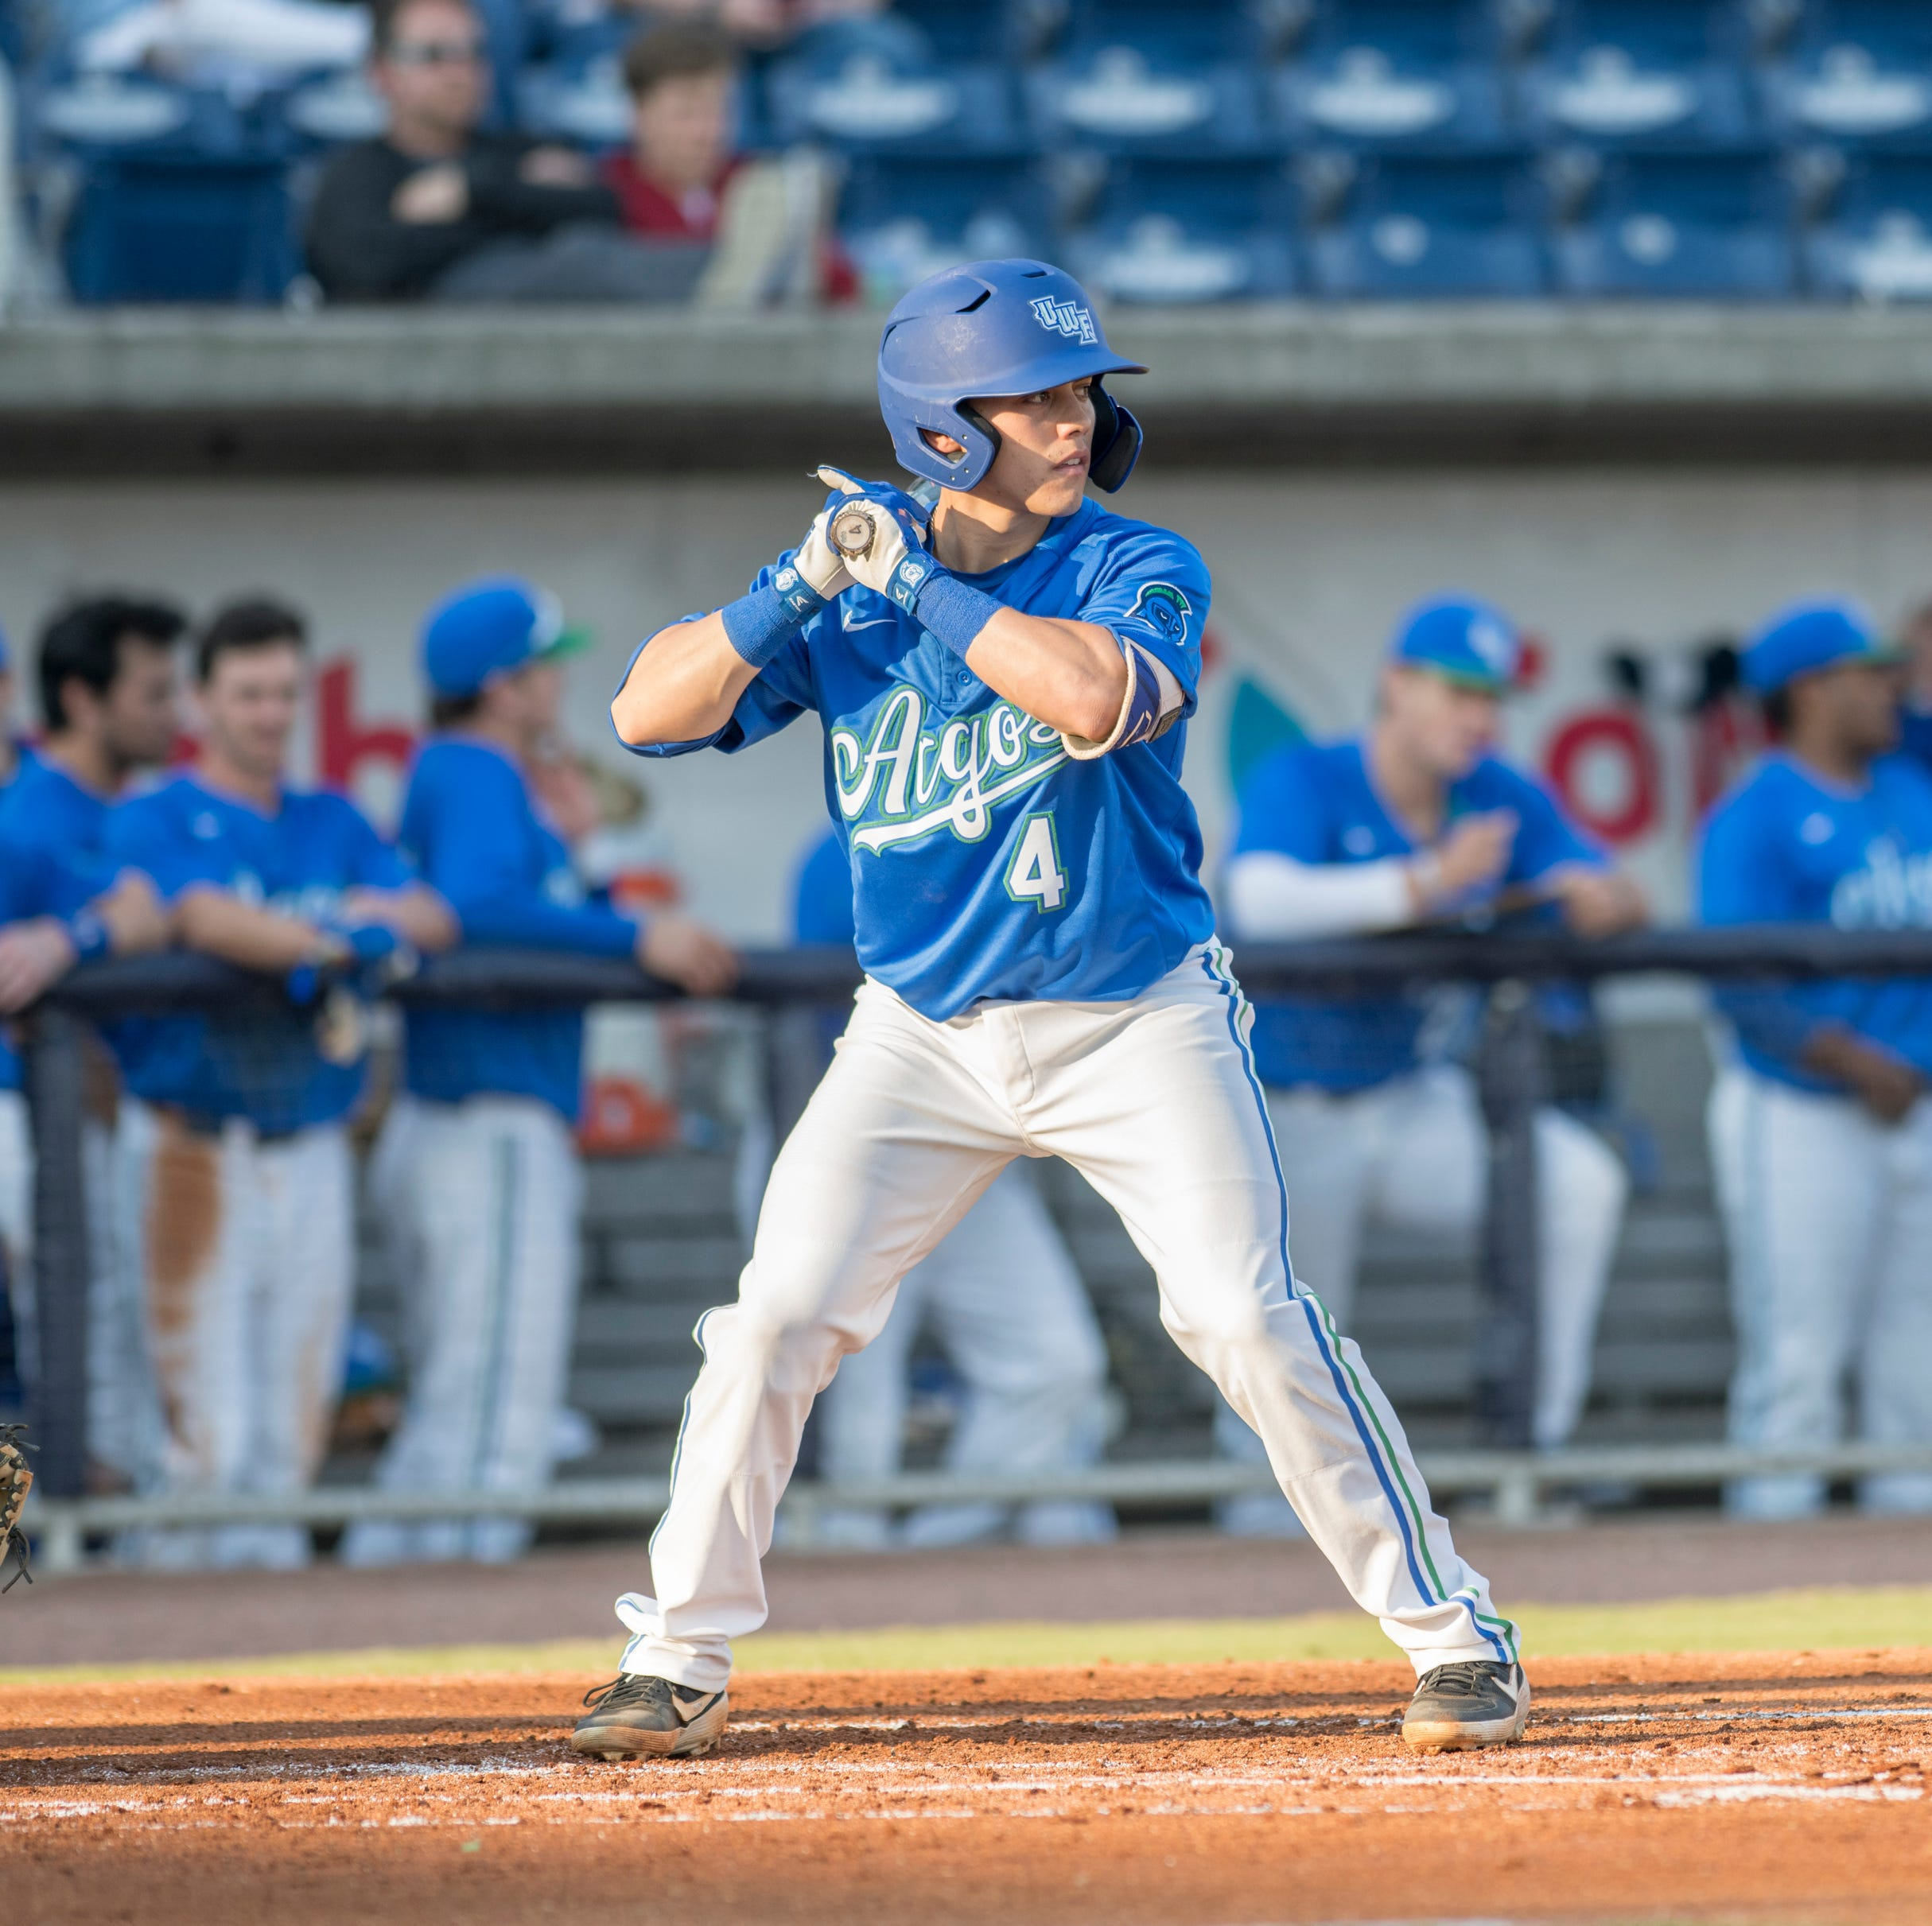 UWF baseball eliminated in NCAA regional; Softball earns No. 2 seed